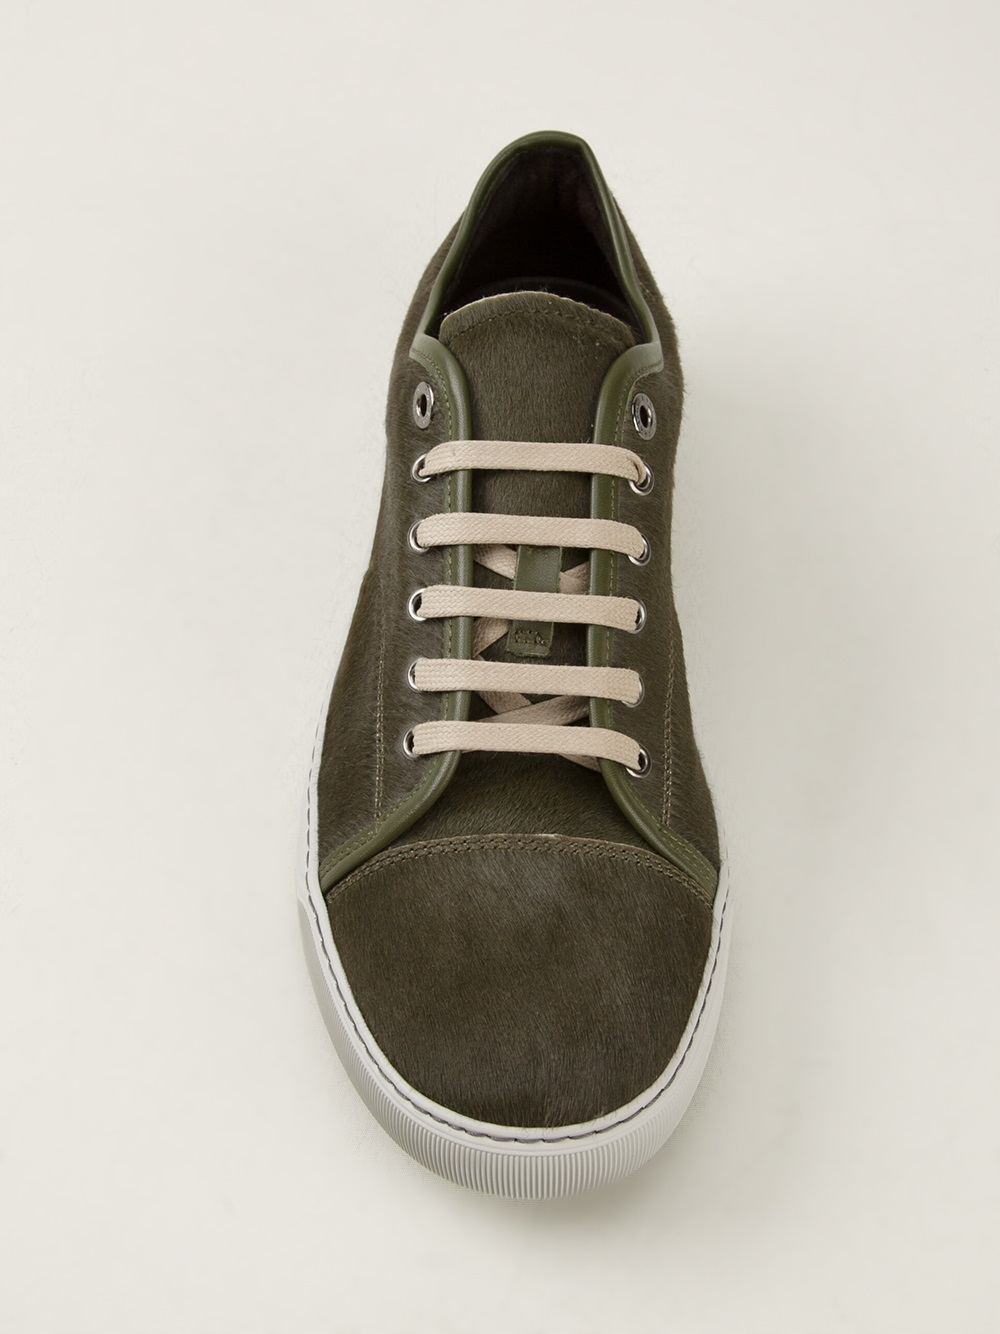 panelled sneakers - Green Lanvin